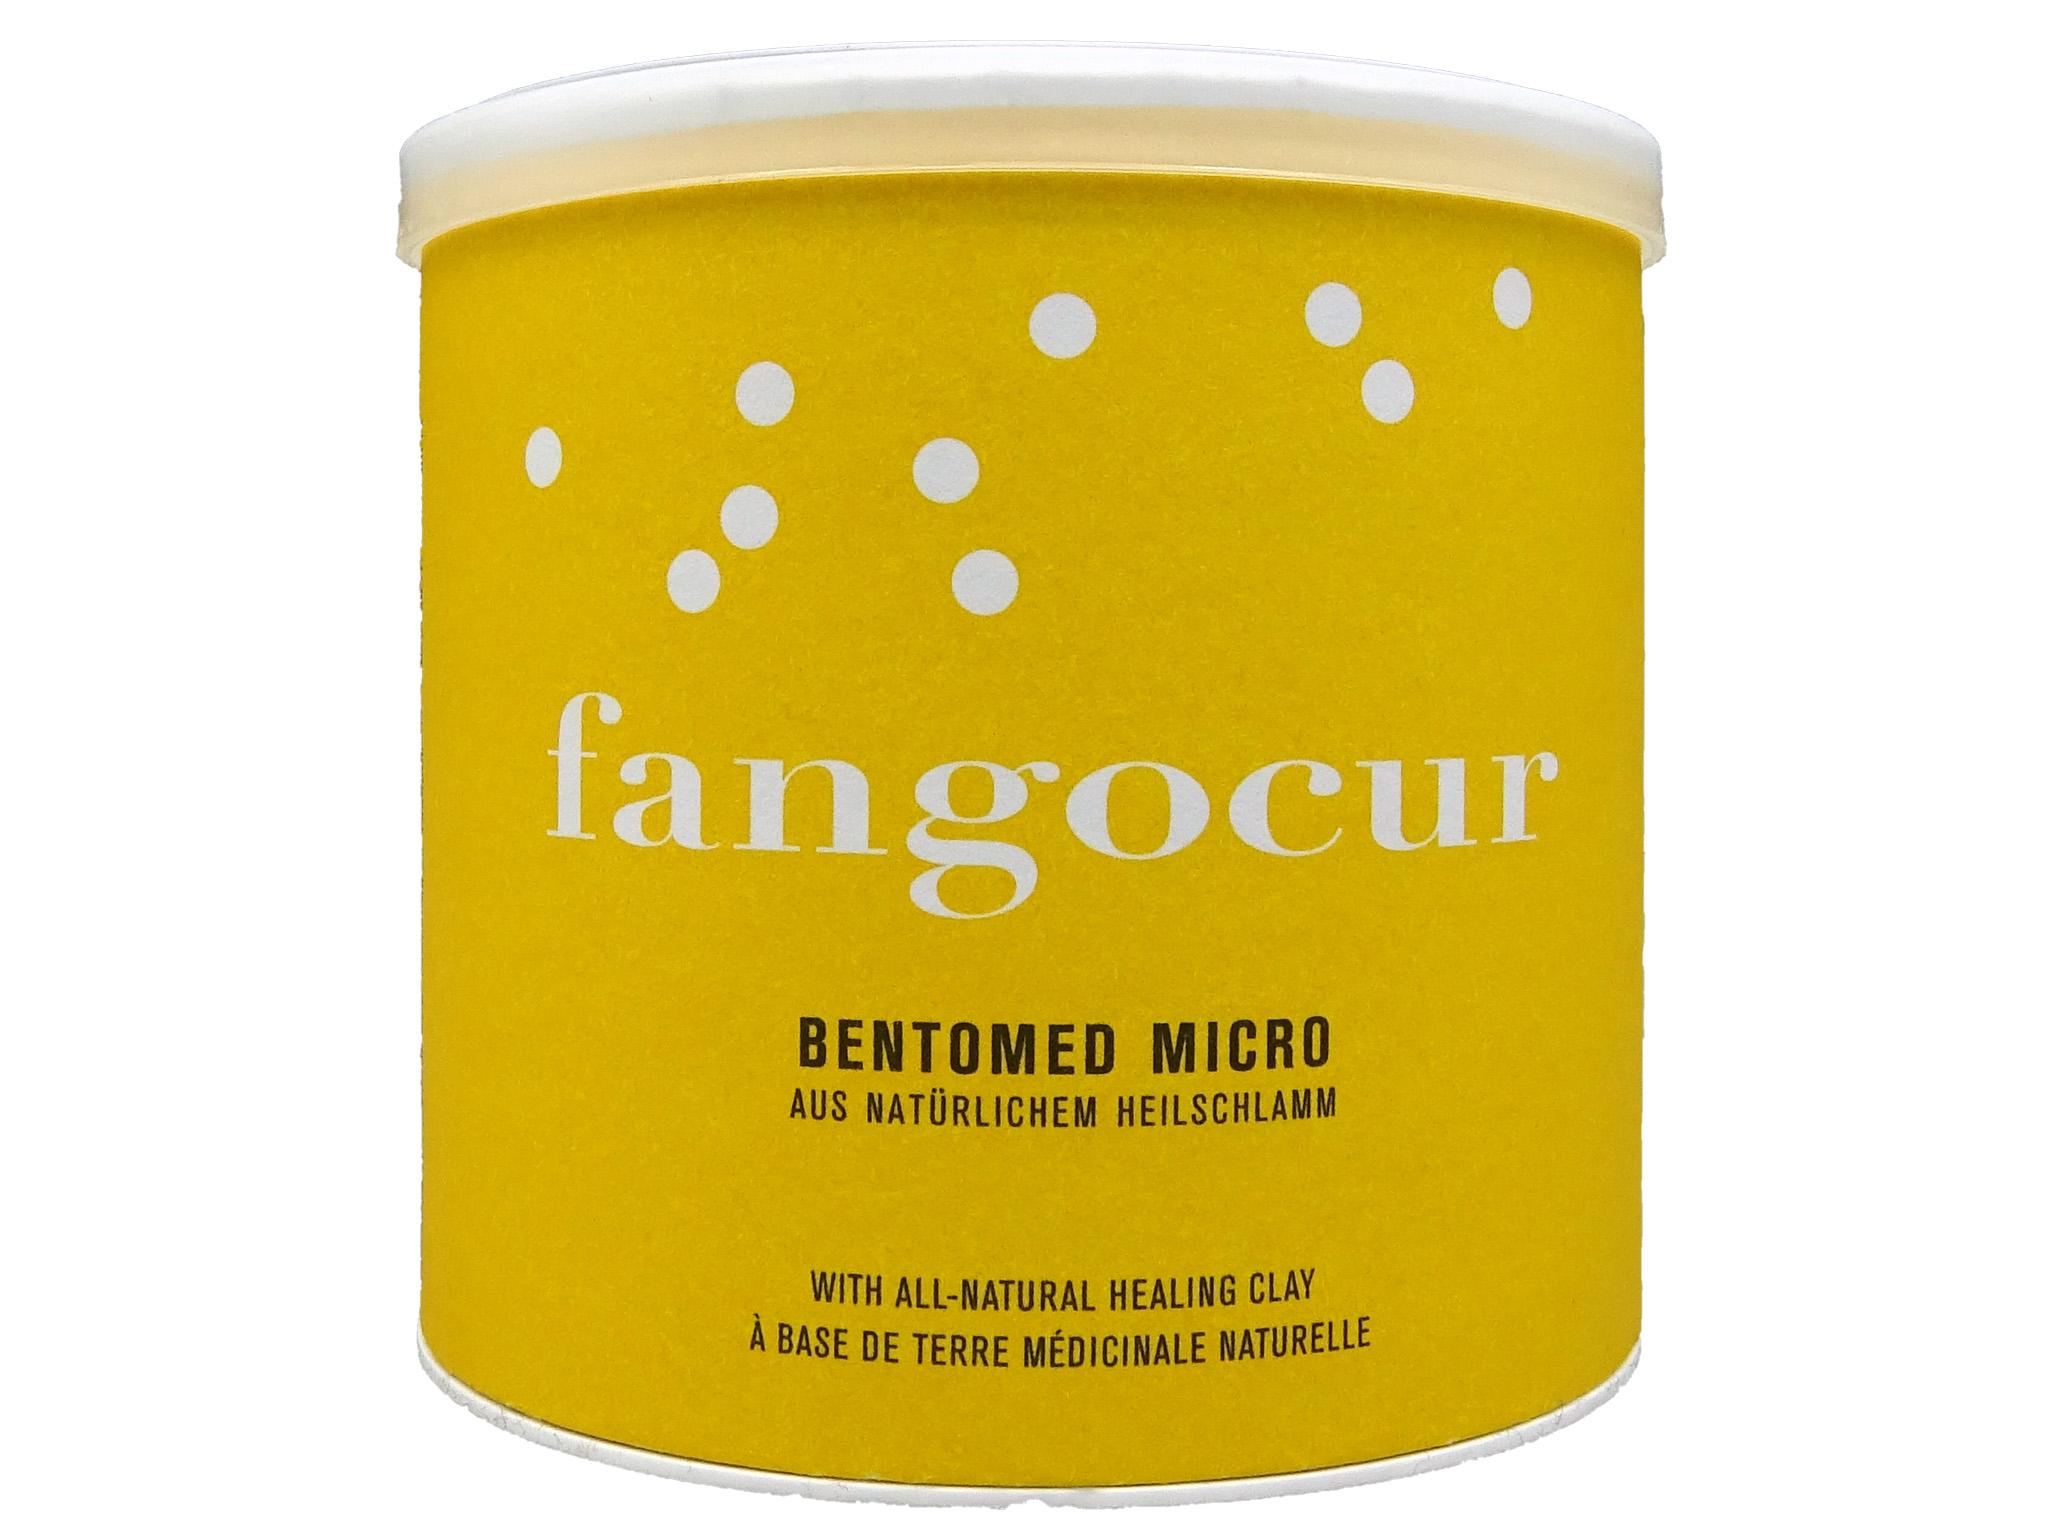 fangocur Bentomed Micro